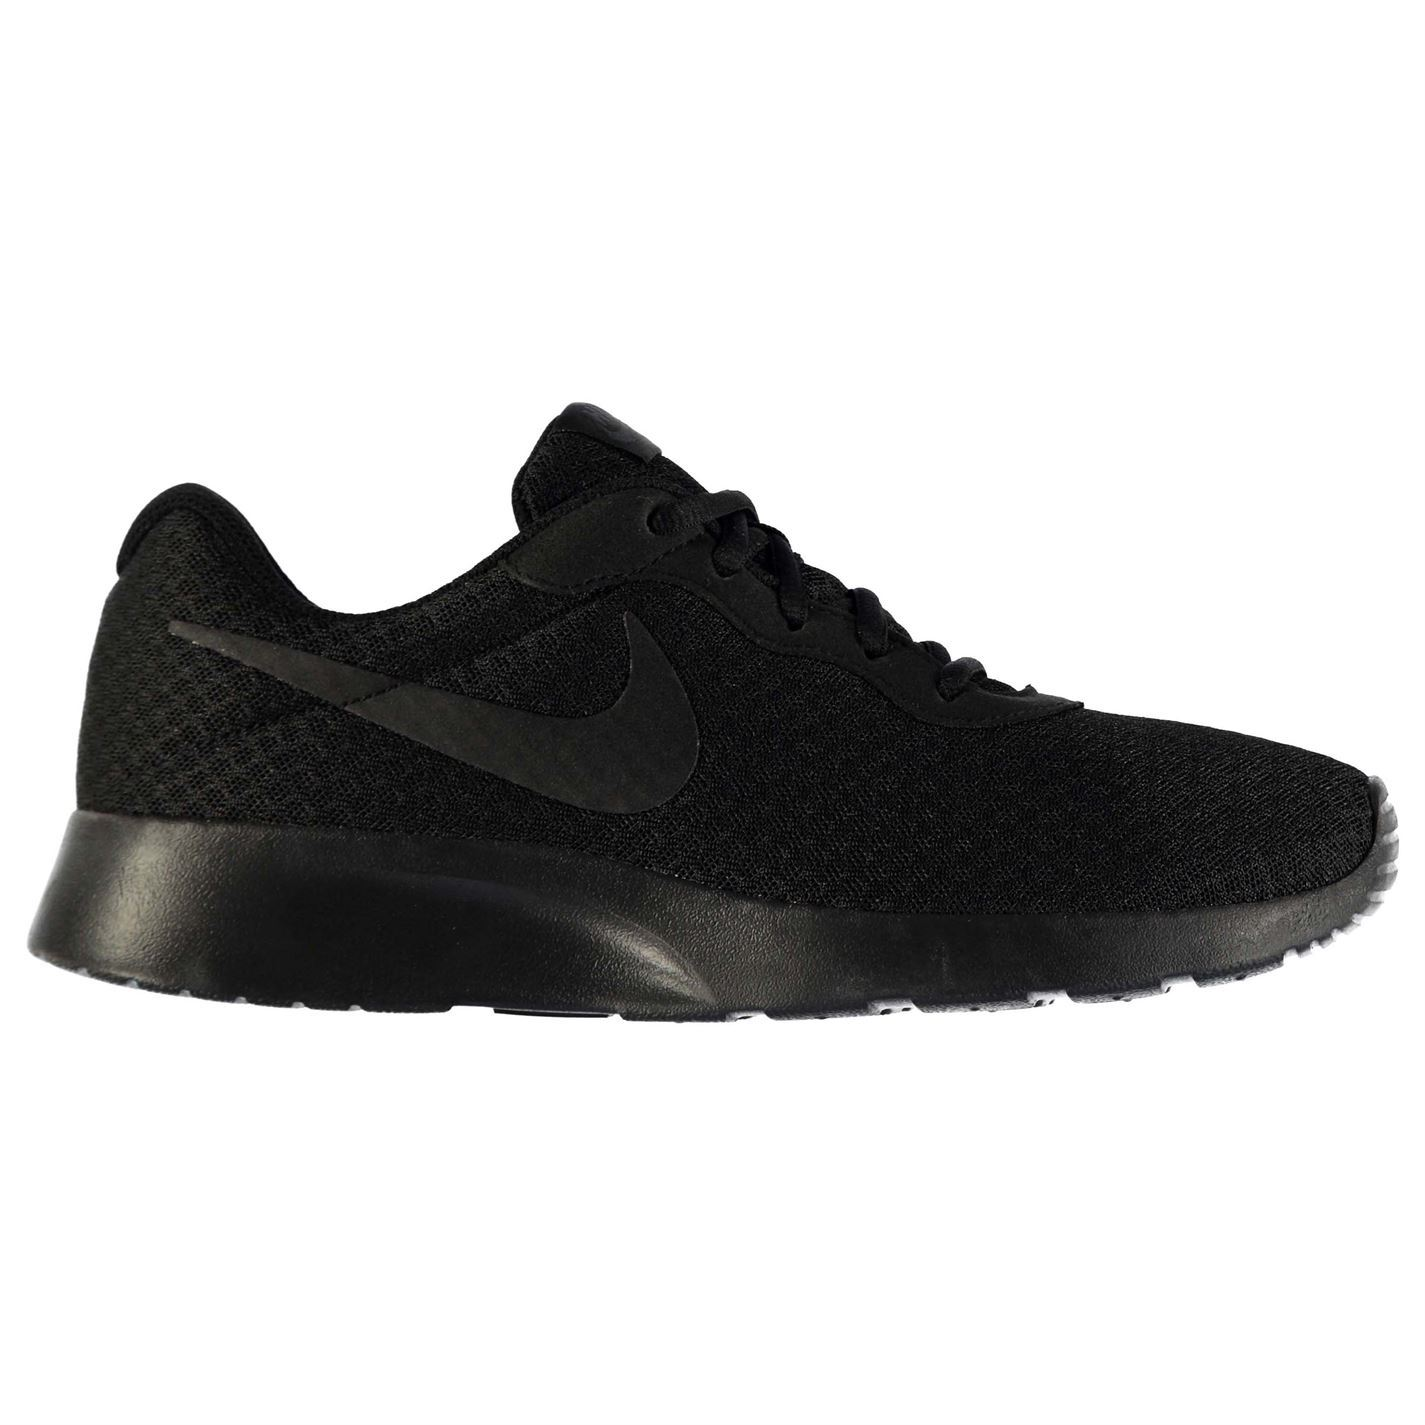 0e8be6153c24 Details about Nike Tanjun Trainers Mens Black Black Sports Shoes Sneakers  Footwear